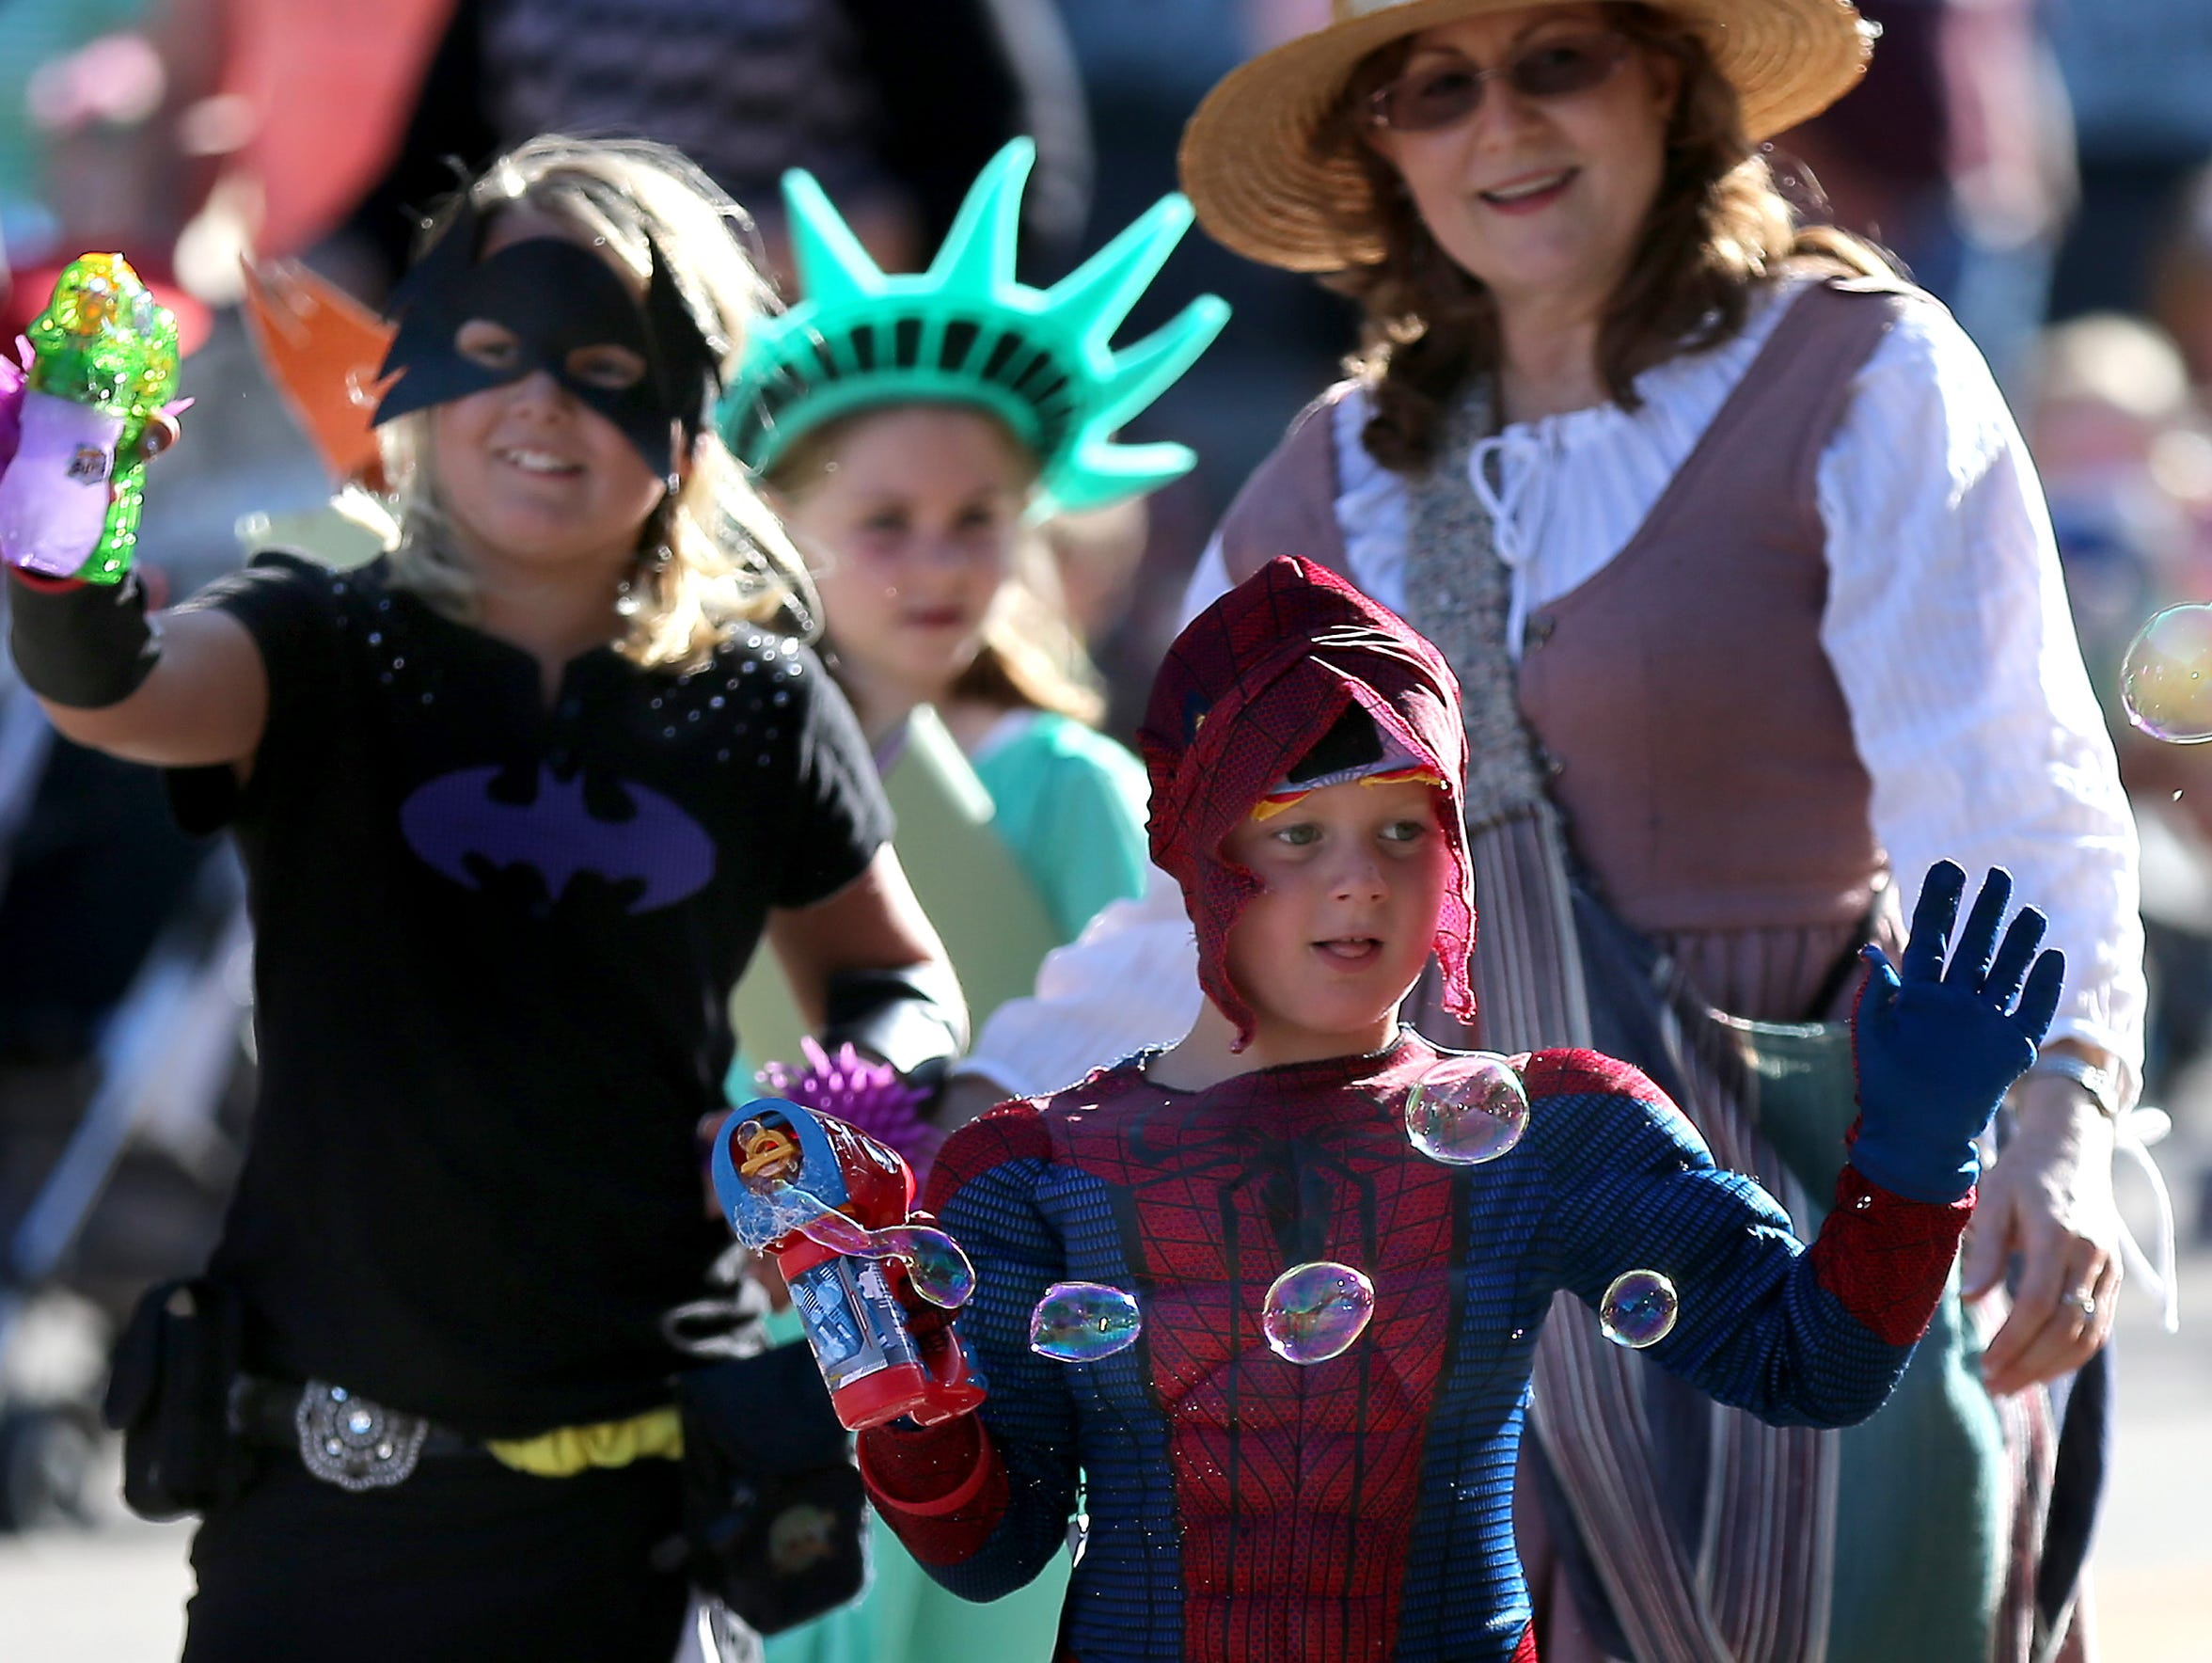 The Appleton Children's Parade will make its way through